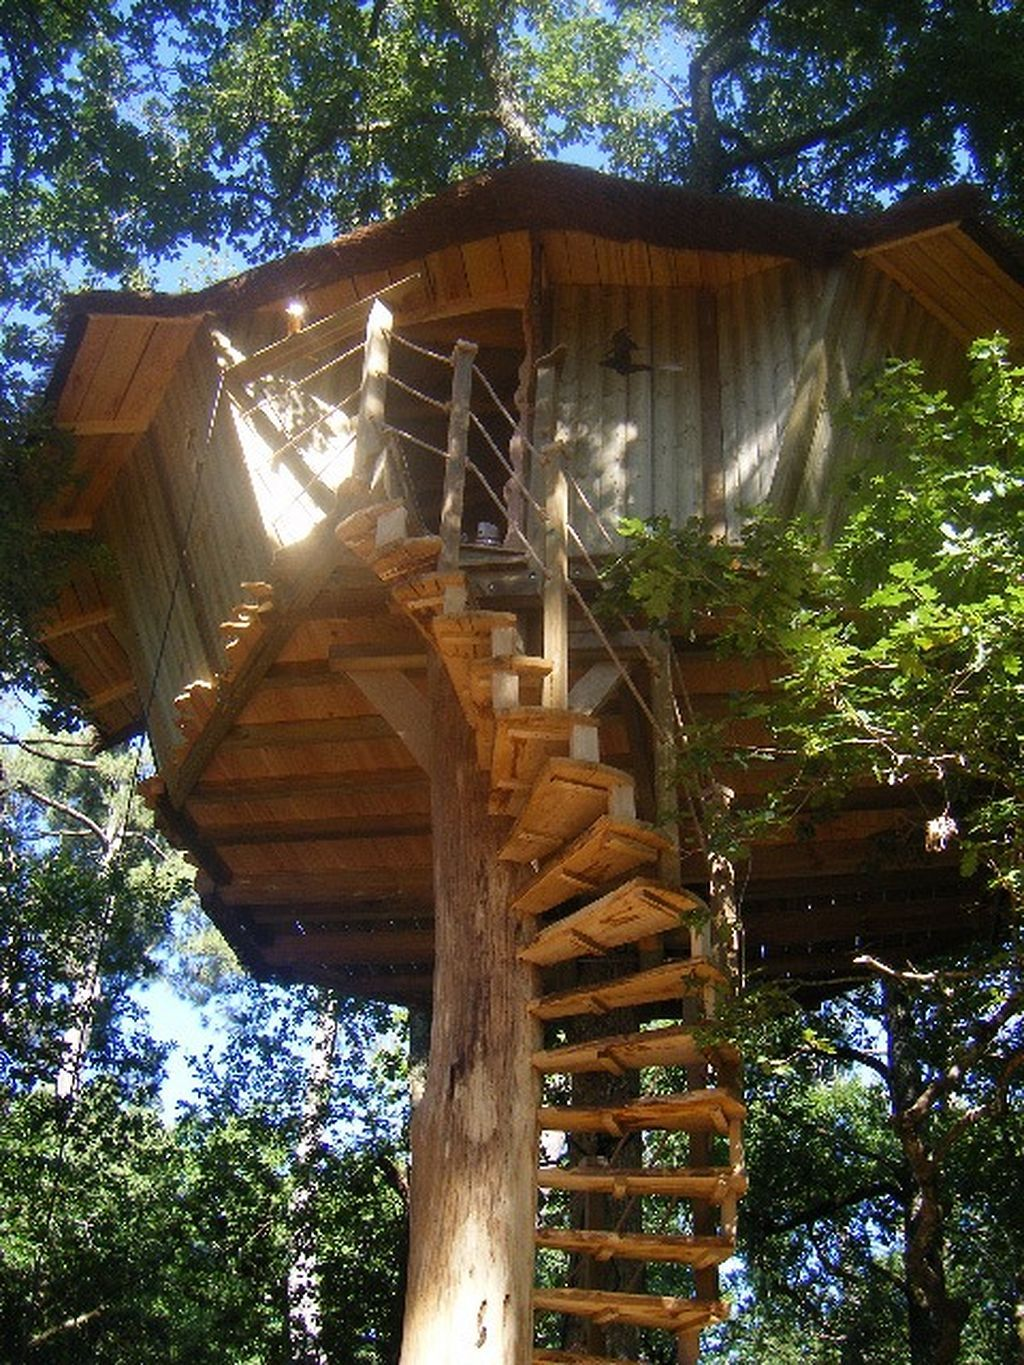 167 Tree House Design Ideas Your Kids Would Love | Pinterest ...